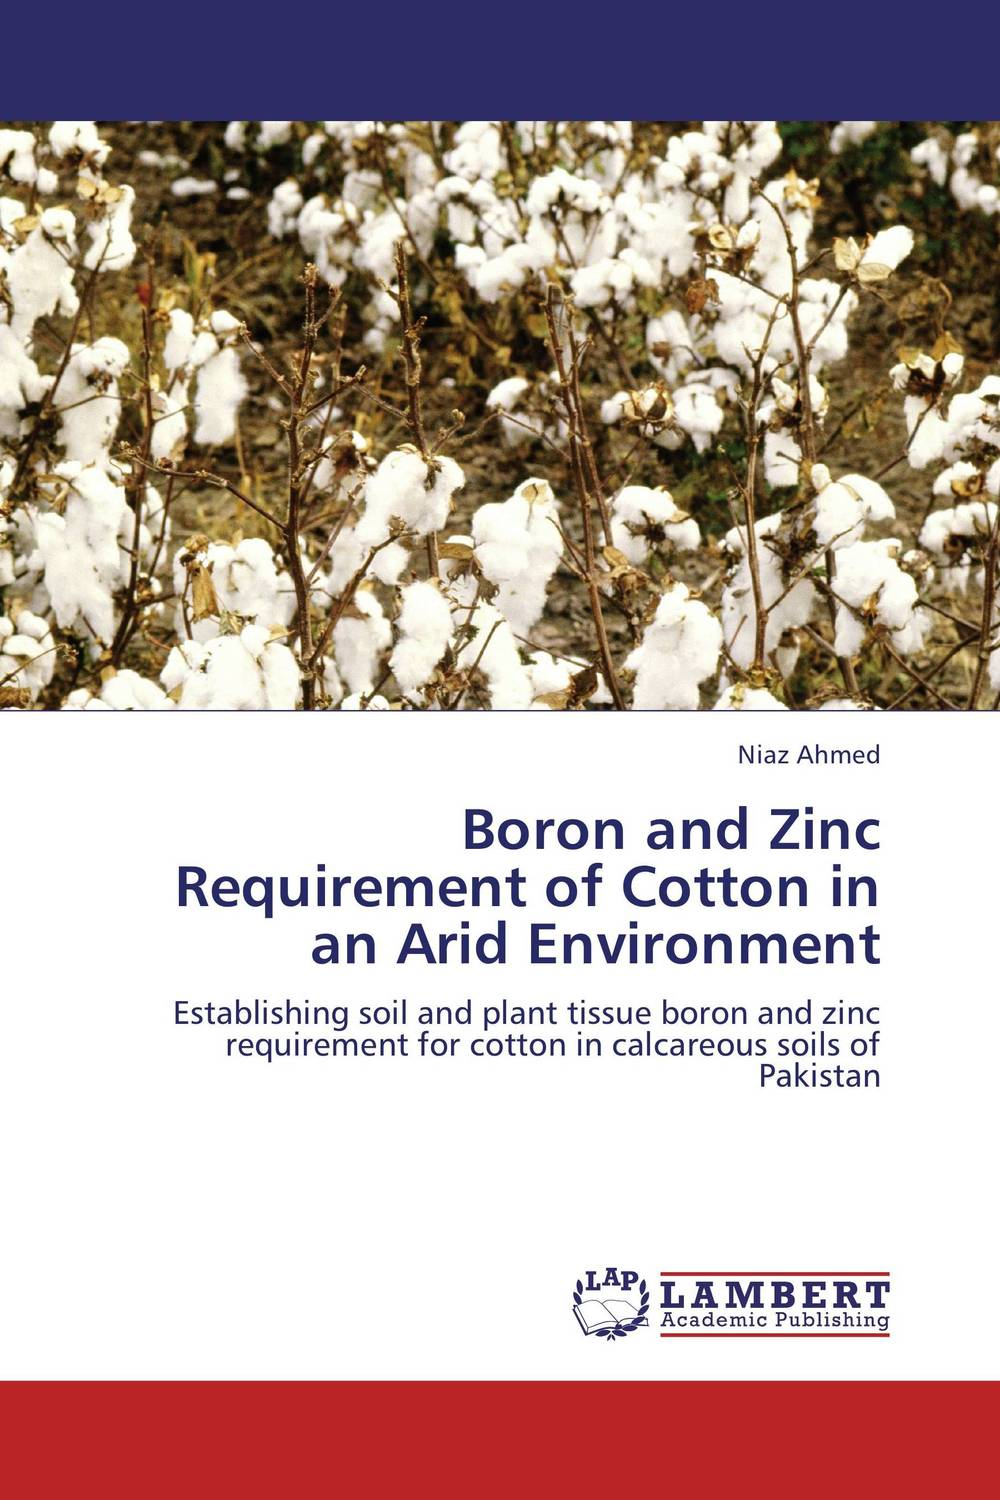 Boron and Zinc Requirement of Cotton in an Arid Environment